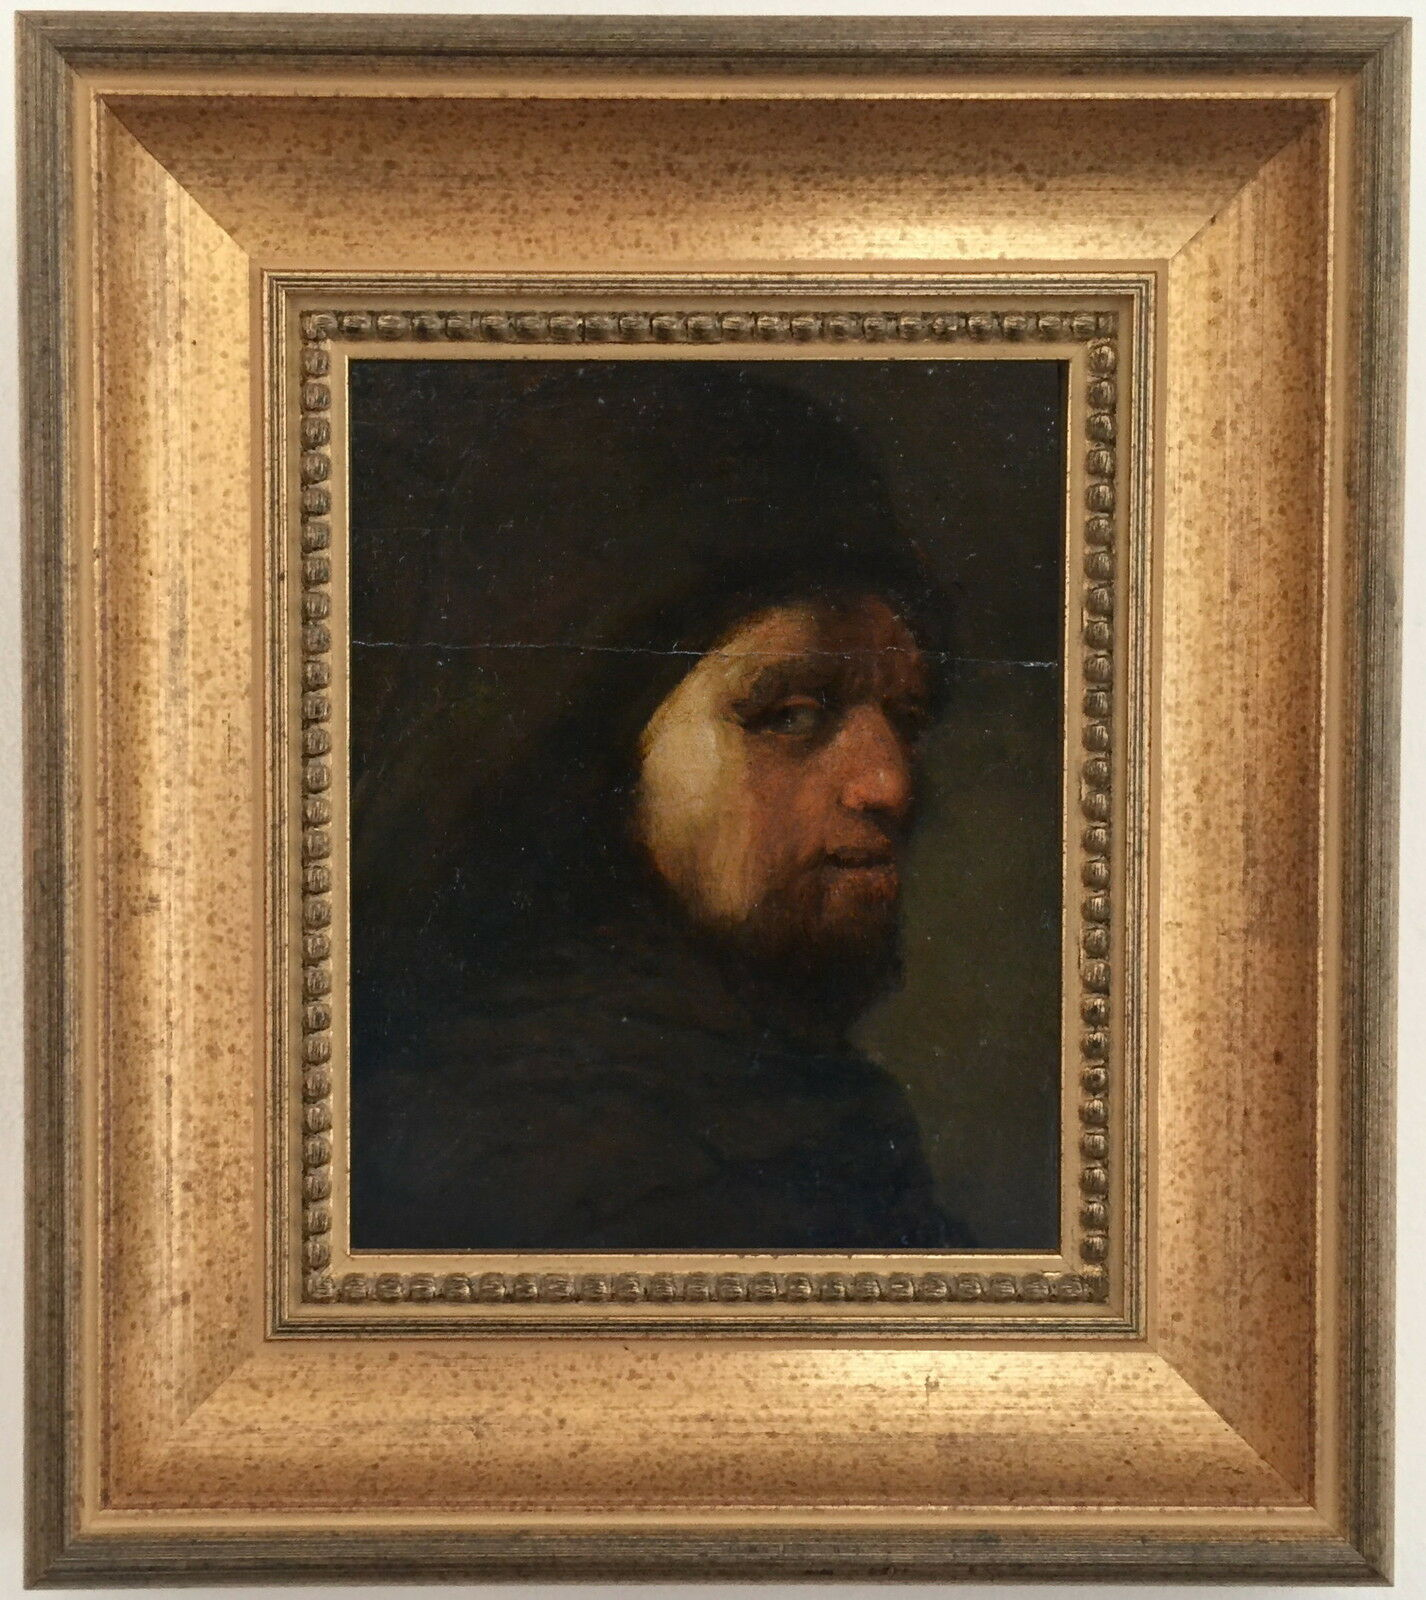 17th century masters of dutch painting essay Controversial methods for more than a hundred years, it has been suggested that the great 17th-century dutch master johannes vermeer made use of the camera obscura as an aid to painting.